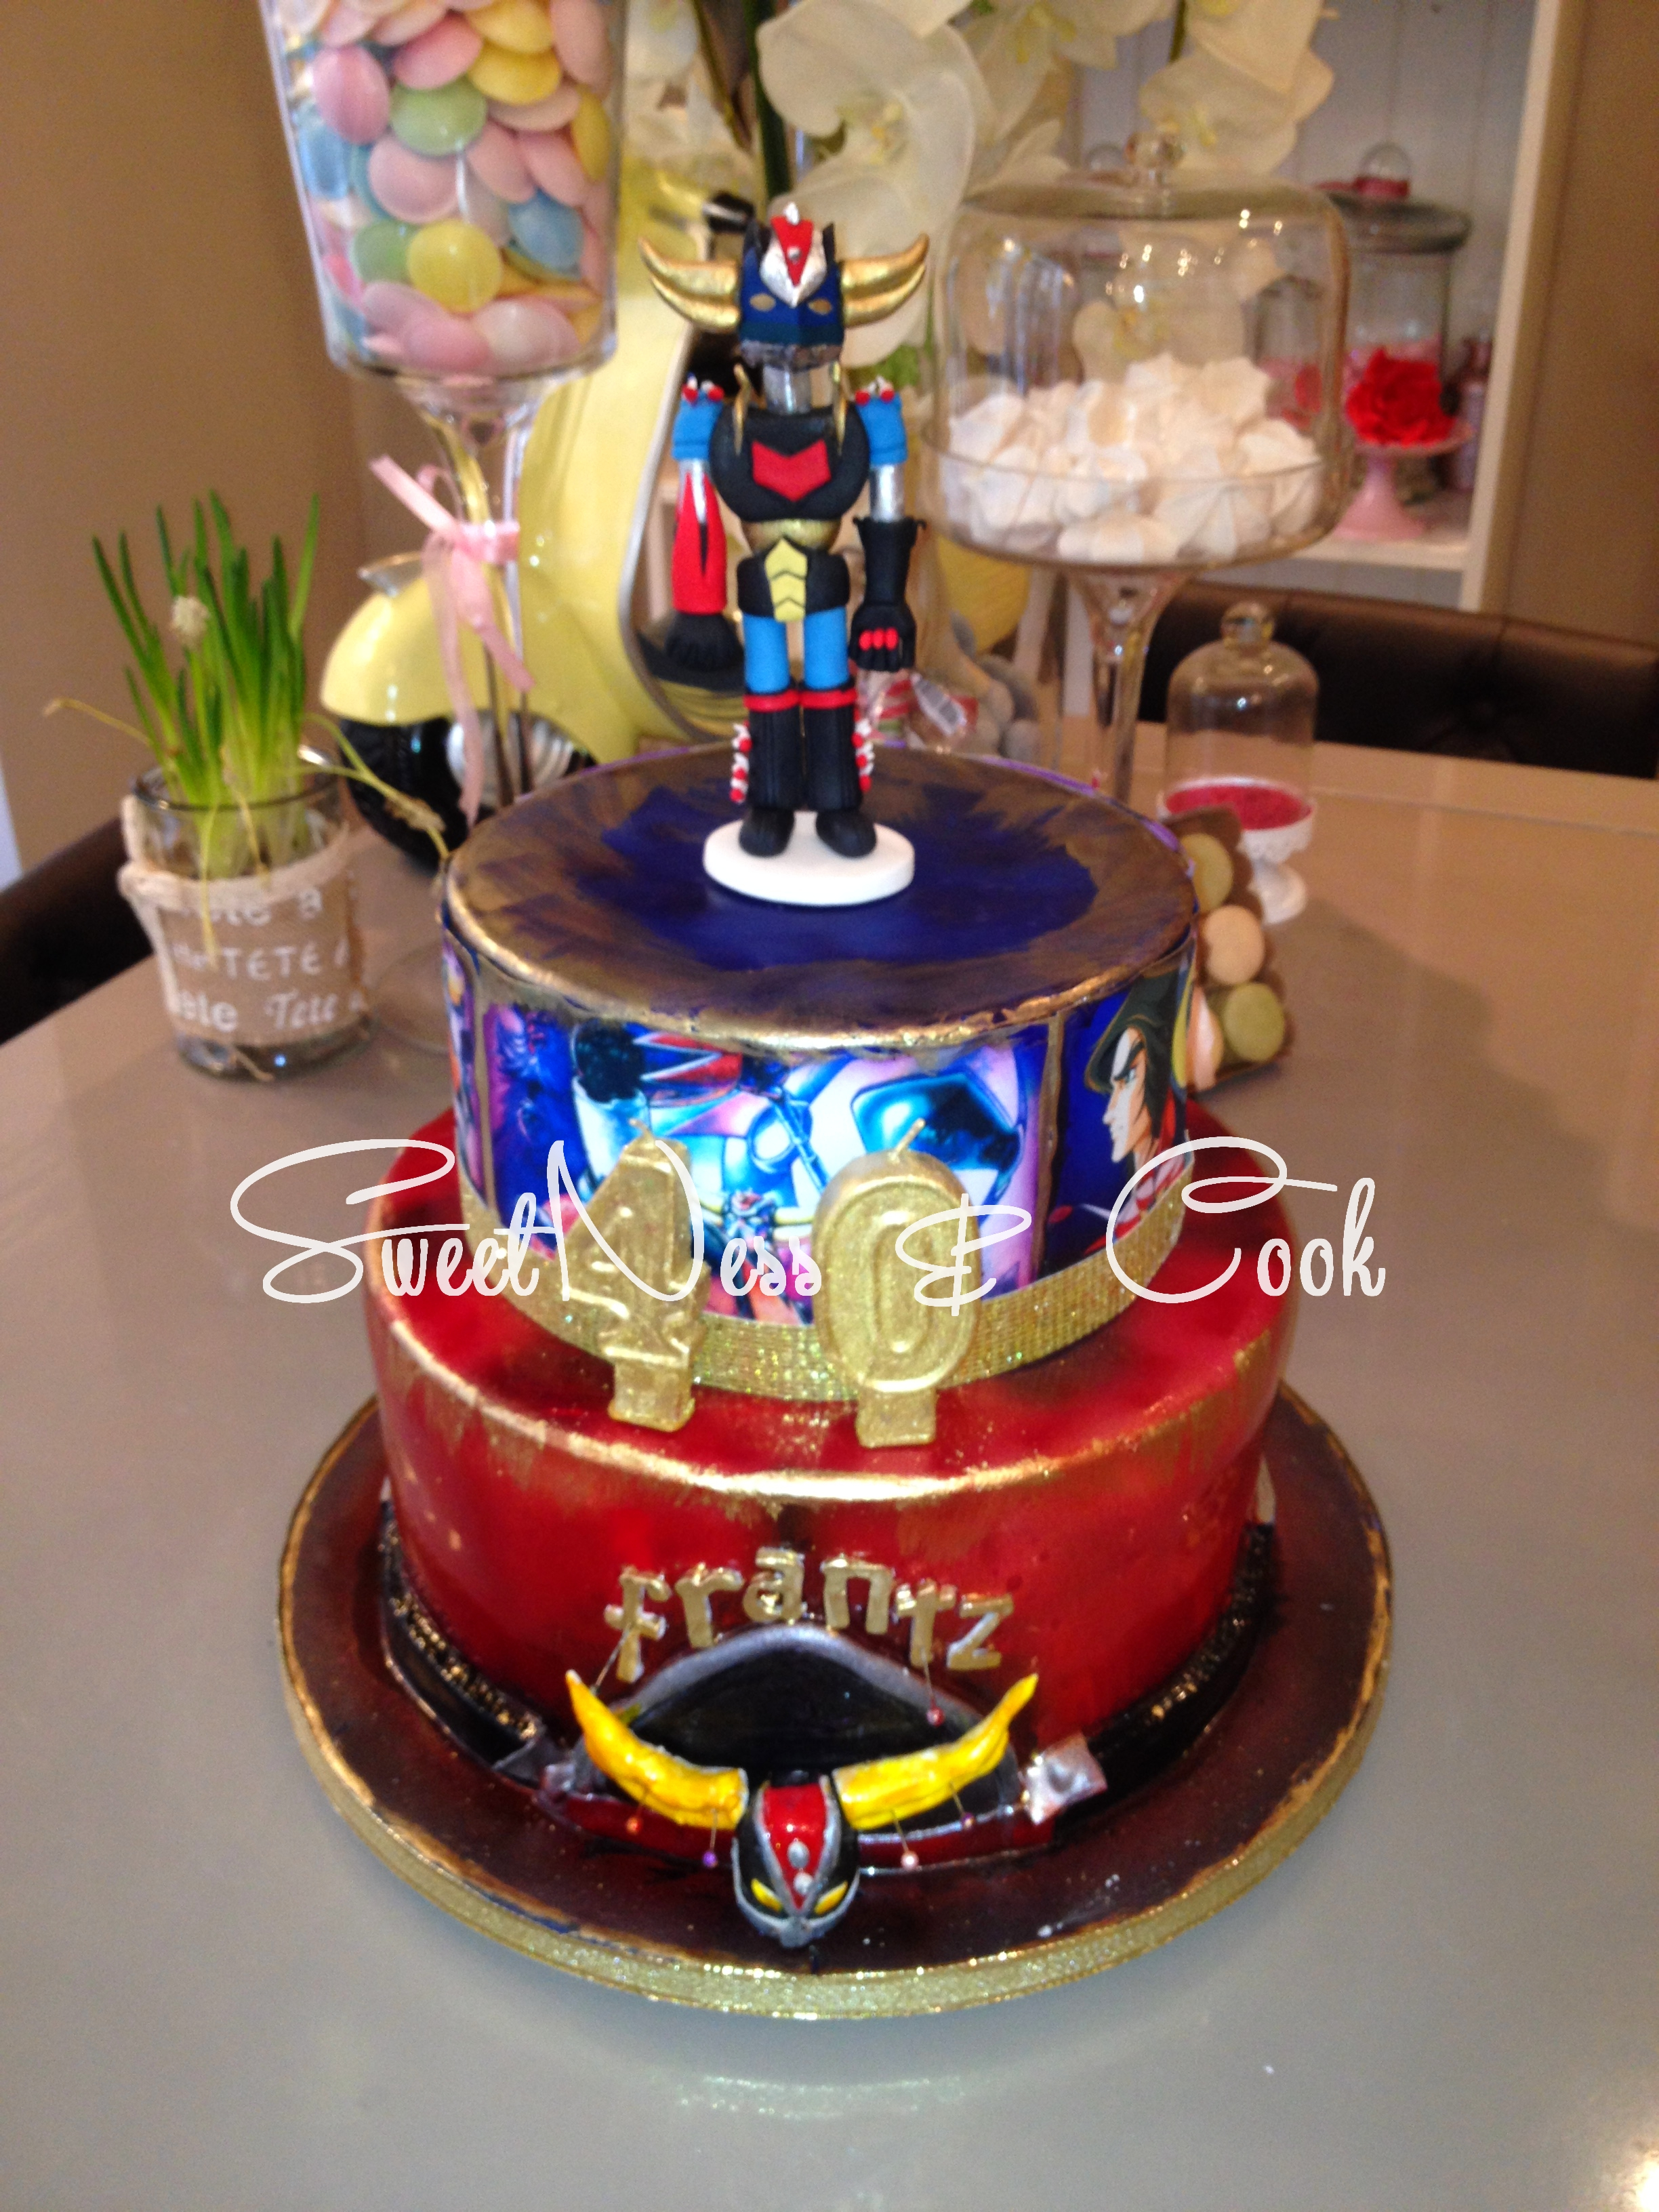 Cake Design Goldorak